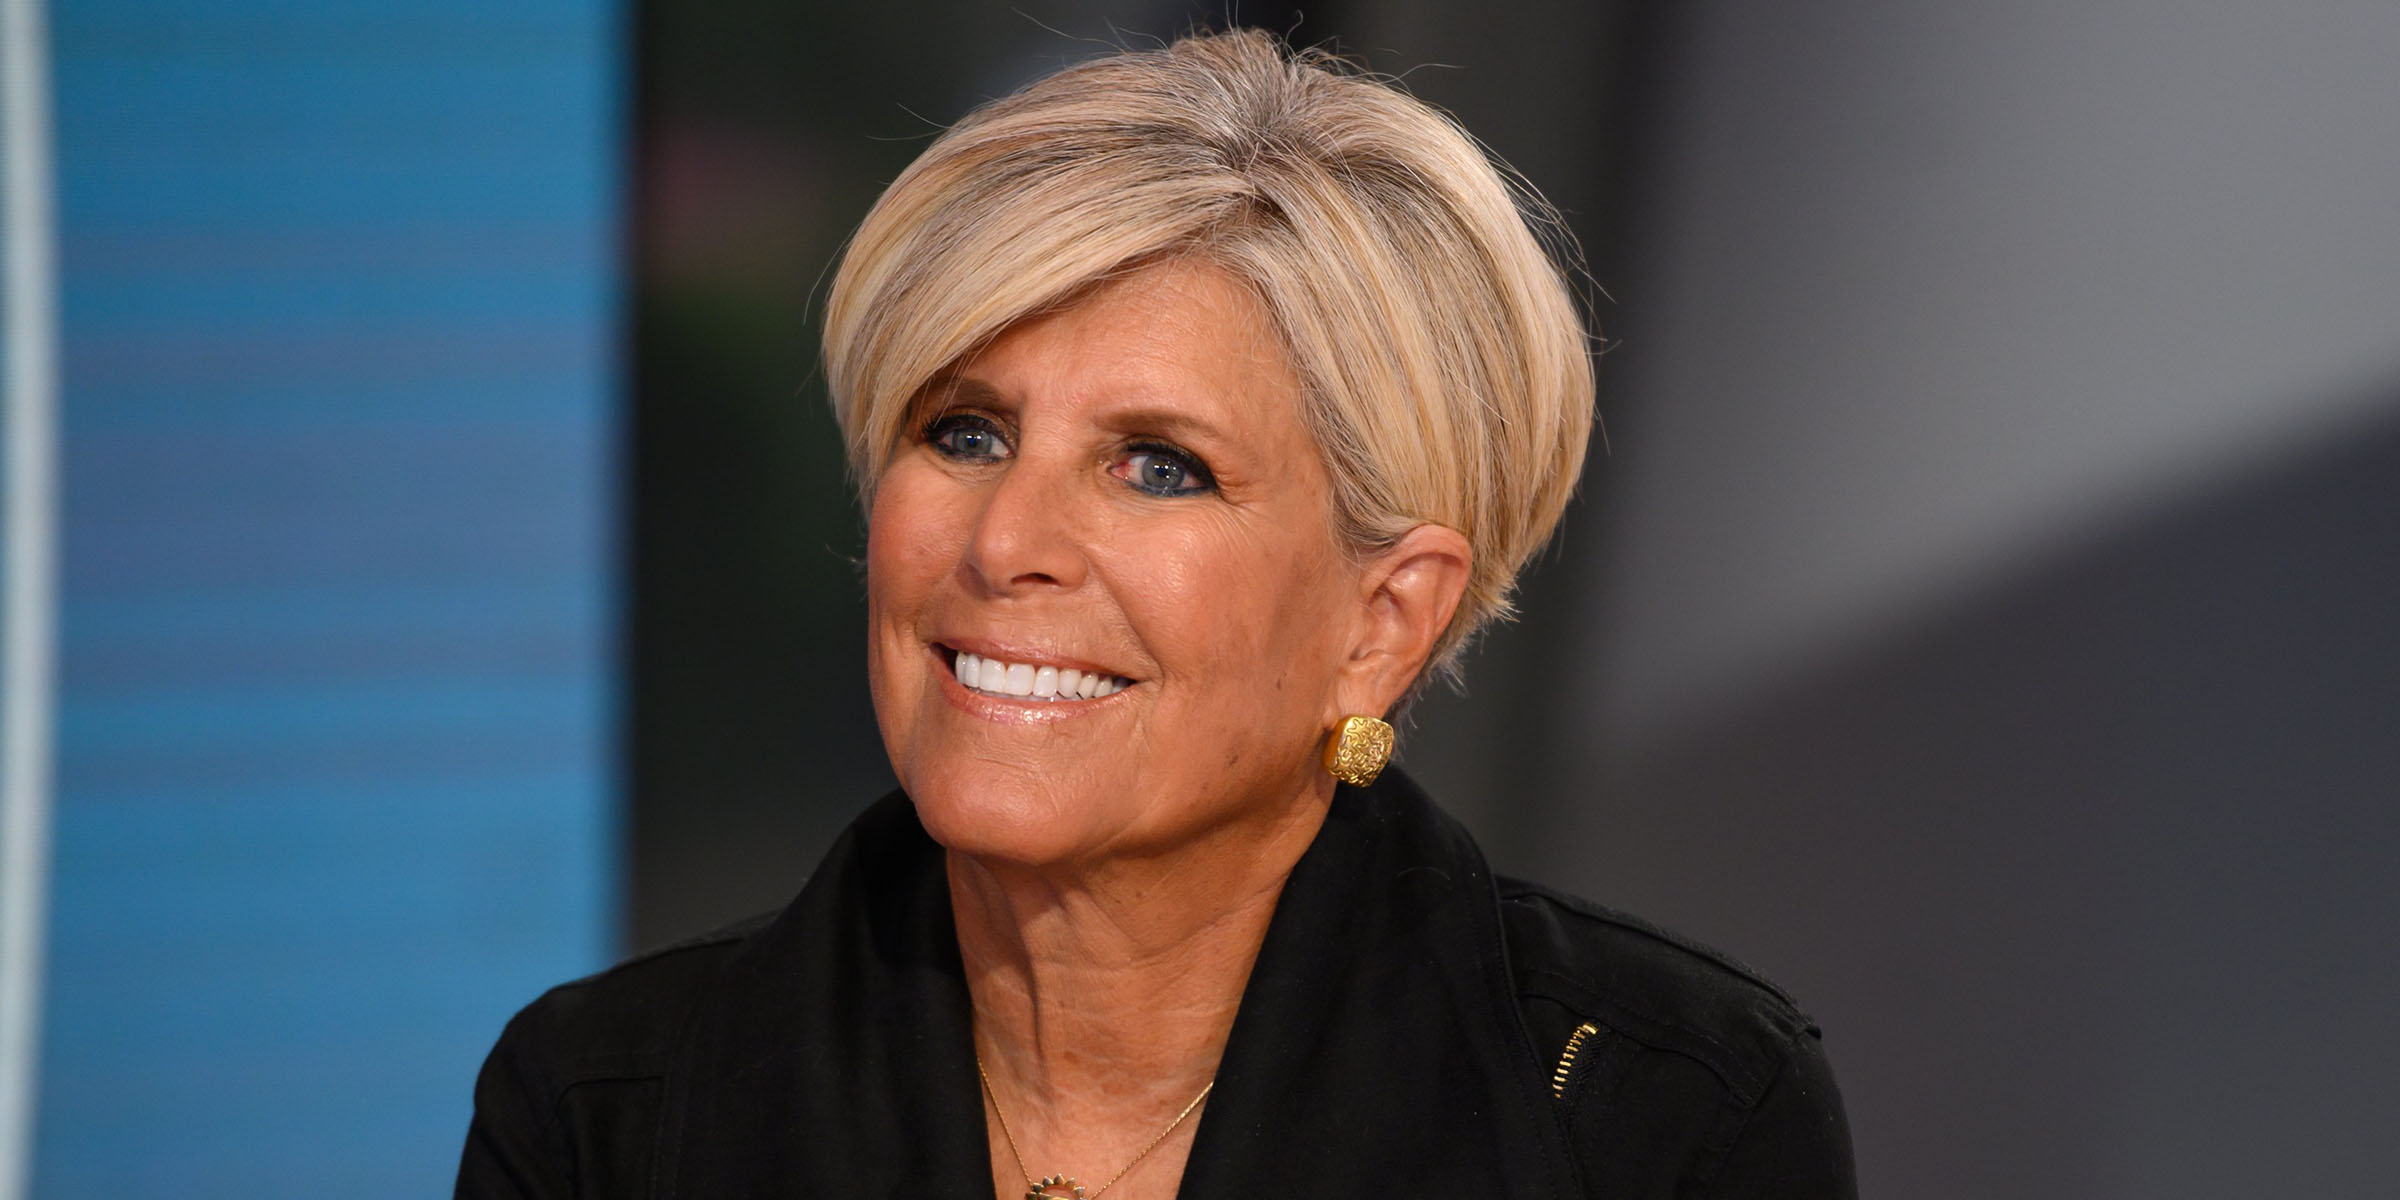 Suze Orman Ask Her Your Financial Questions During The Pandemic